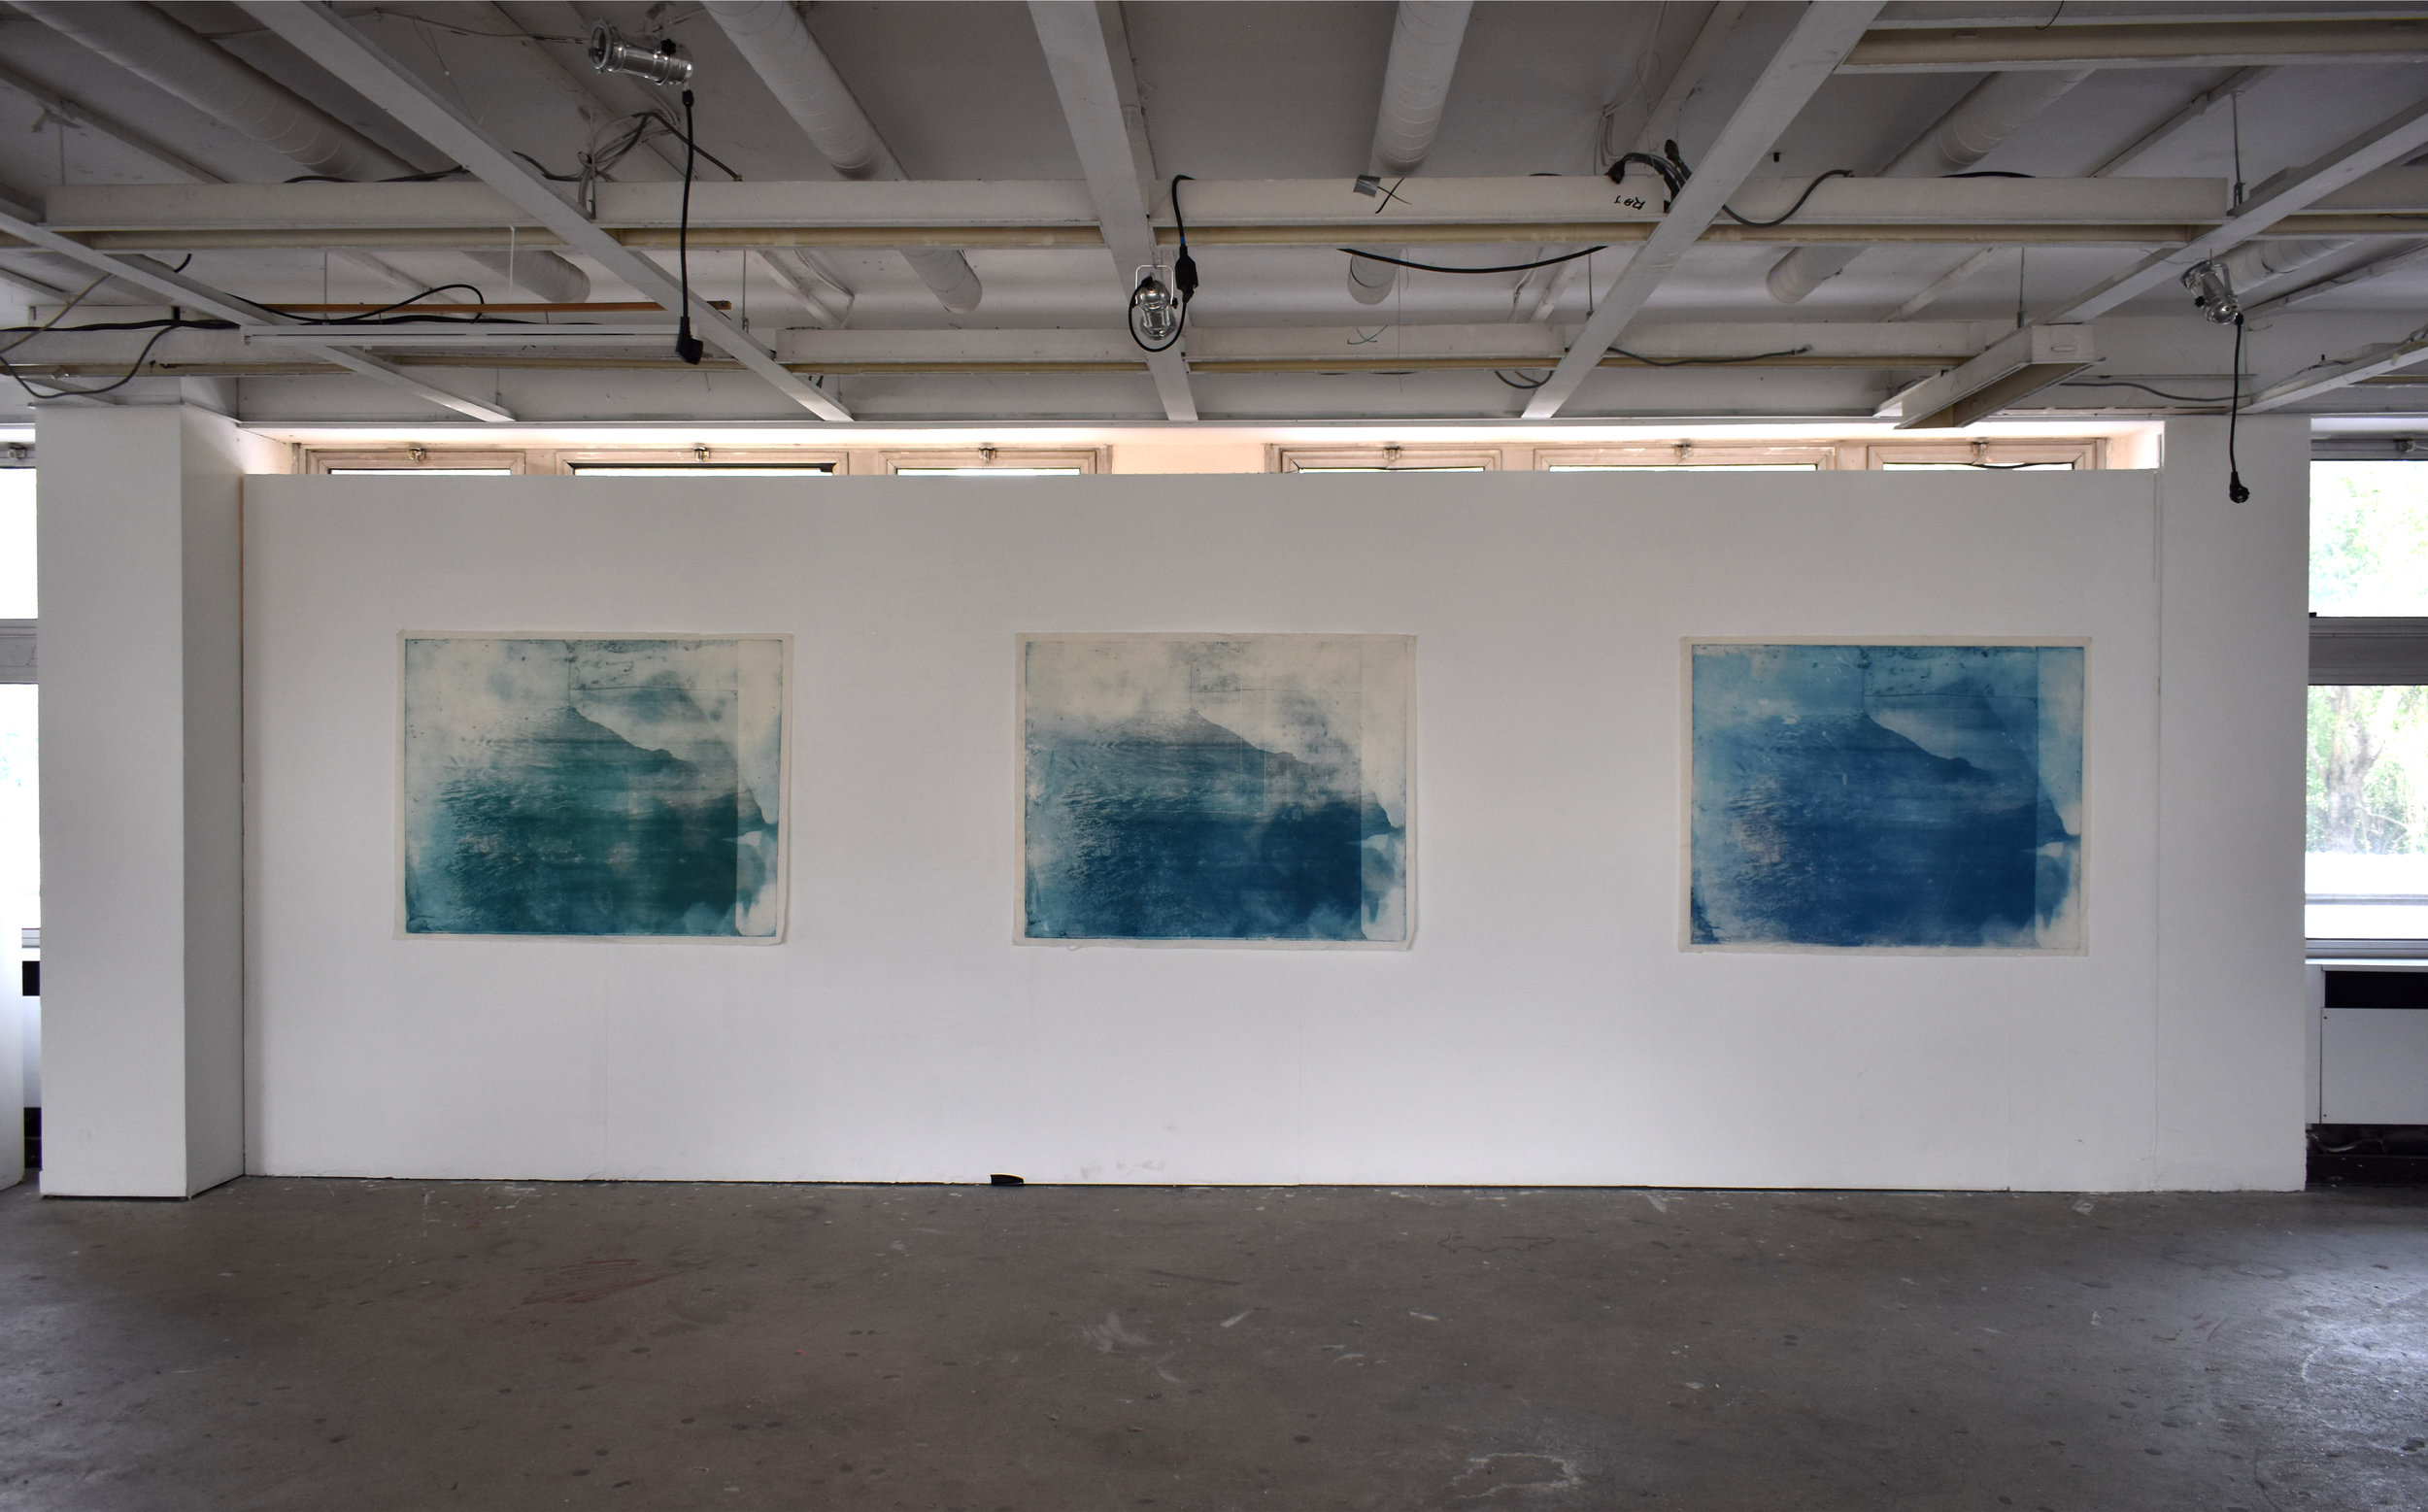 Over and Under (Whirlpool),  No. 3-6, 2019, series of 9 photopolymer prints (from Prussian blue to orange oxide) printed on semi-transparent Thai paper. 137 x 109cm each. Superposition of 2 photographs taken by the artist: fumerole pits in Námafjall, Iceland and a whirlpool off the Cap Fréhel, France. Installation shot at Le 6b, Saint-Denis, France.